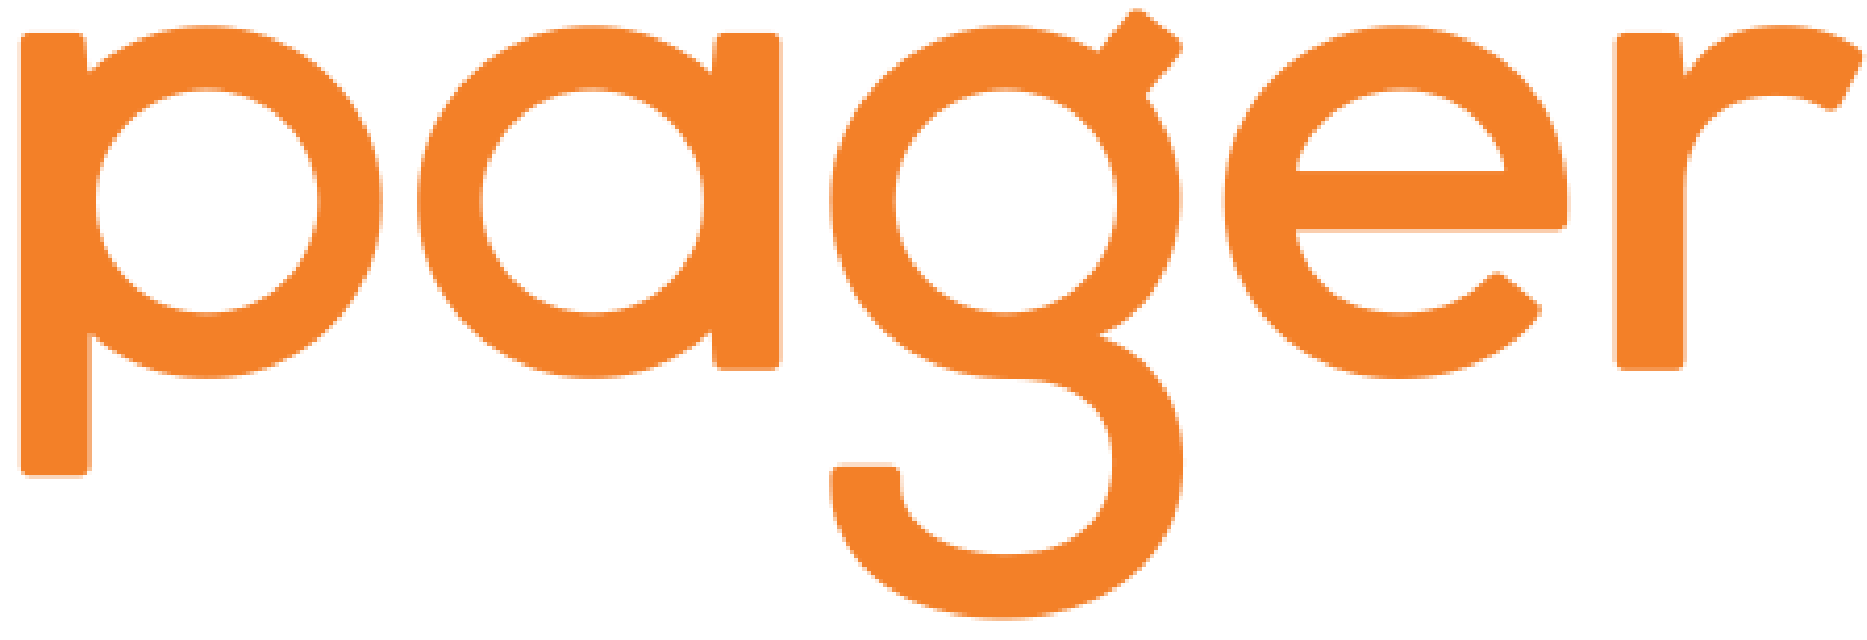 pager-logo